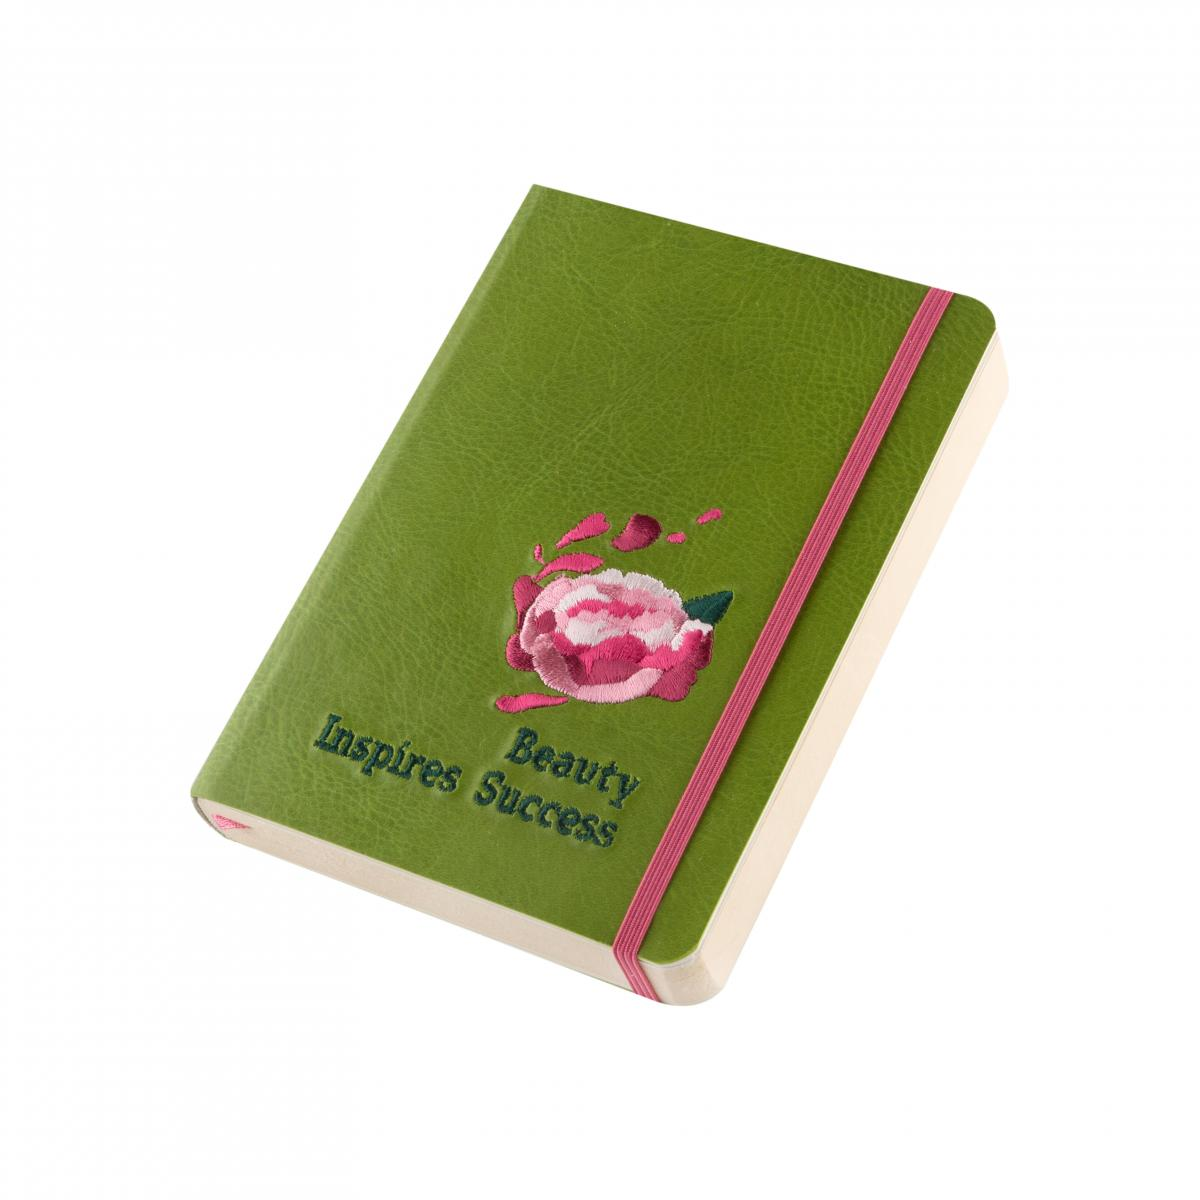 Eco-leather notebook with embroidery Beauty inspires success, green. Photo №3. | Narodnyi dim Ukraine